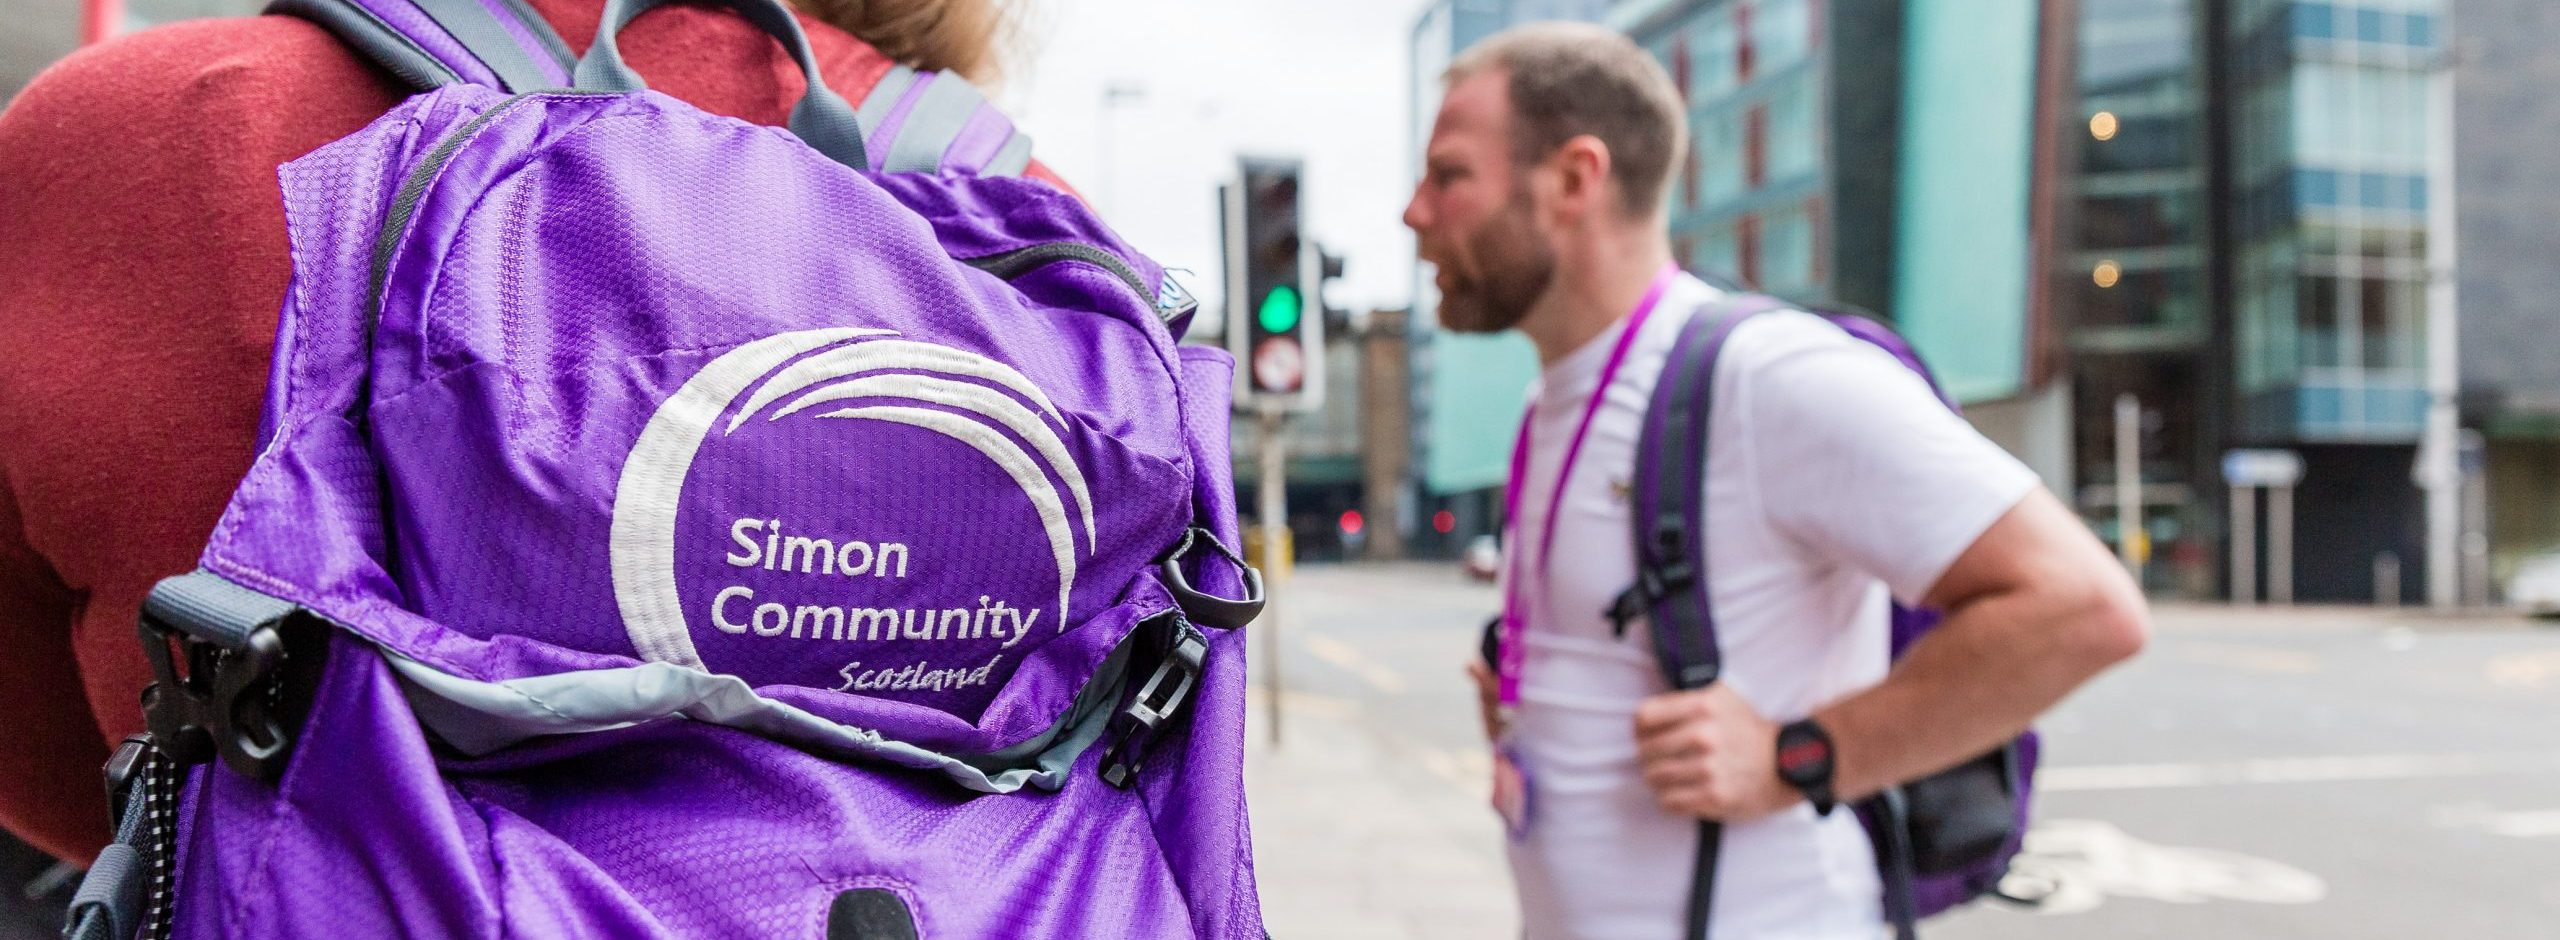 Our latest vacancies and job opportunities in our team; join us at Simon Community Scotland and make a difference for people experiencing homelessness